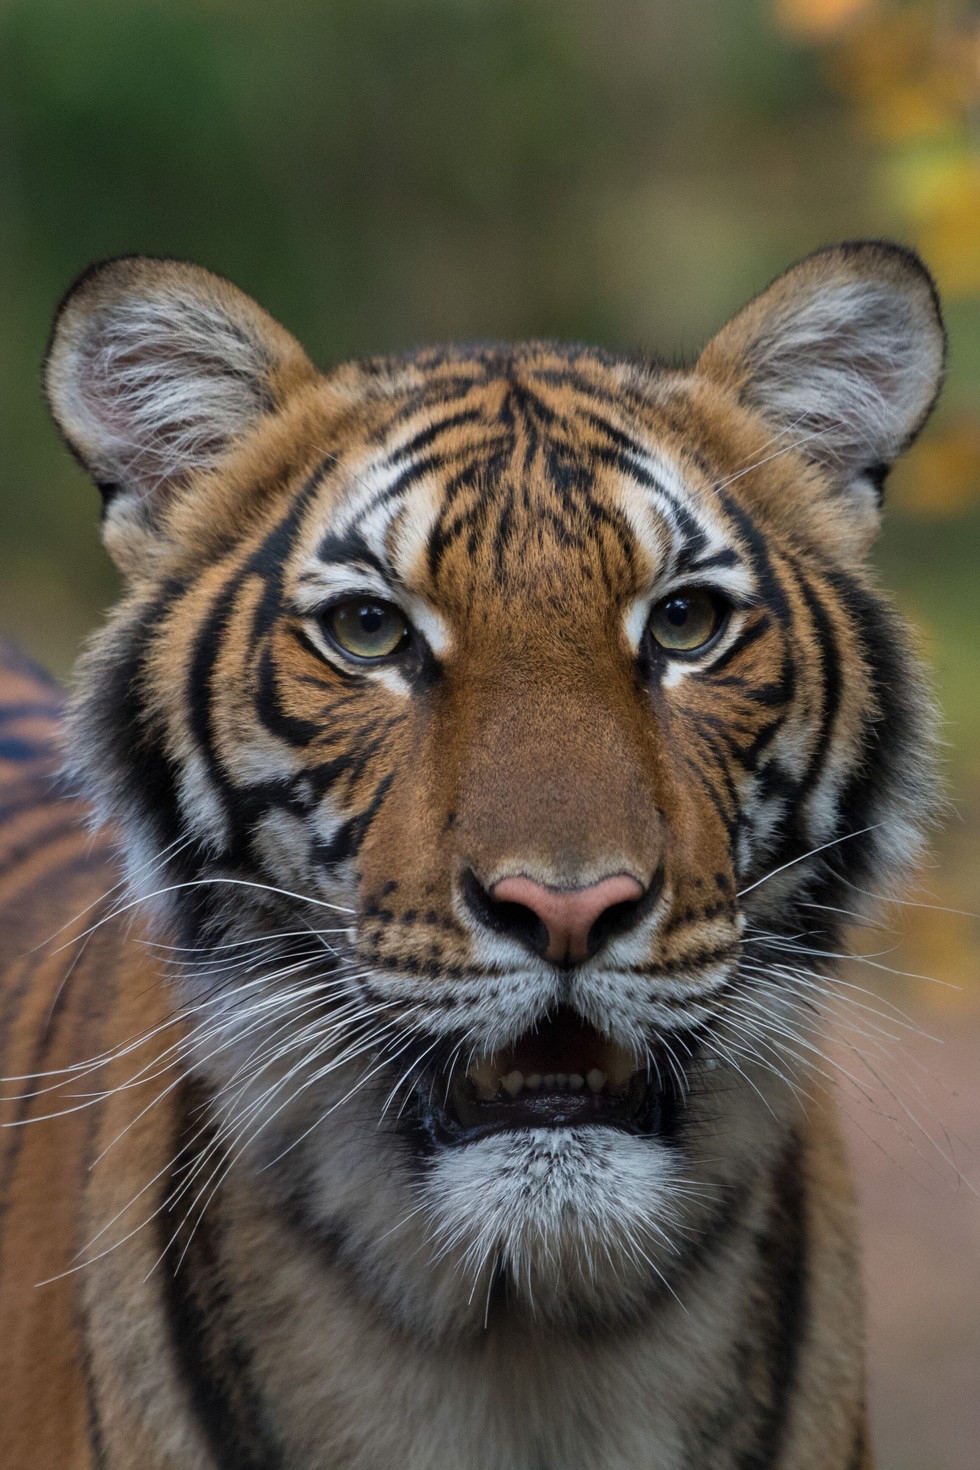 Bronx Zoo Update: Lions and Tigers Recovering from Covid-19